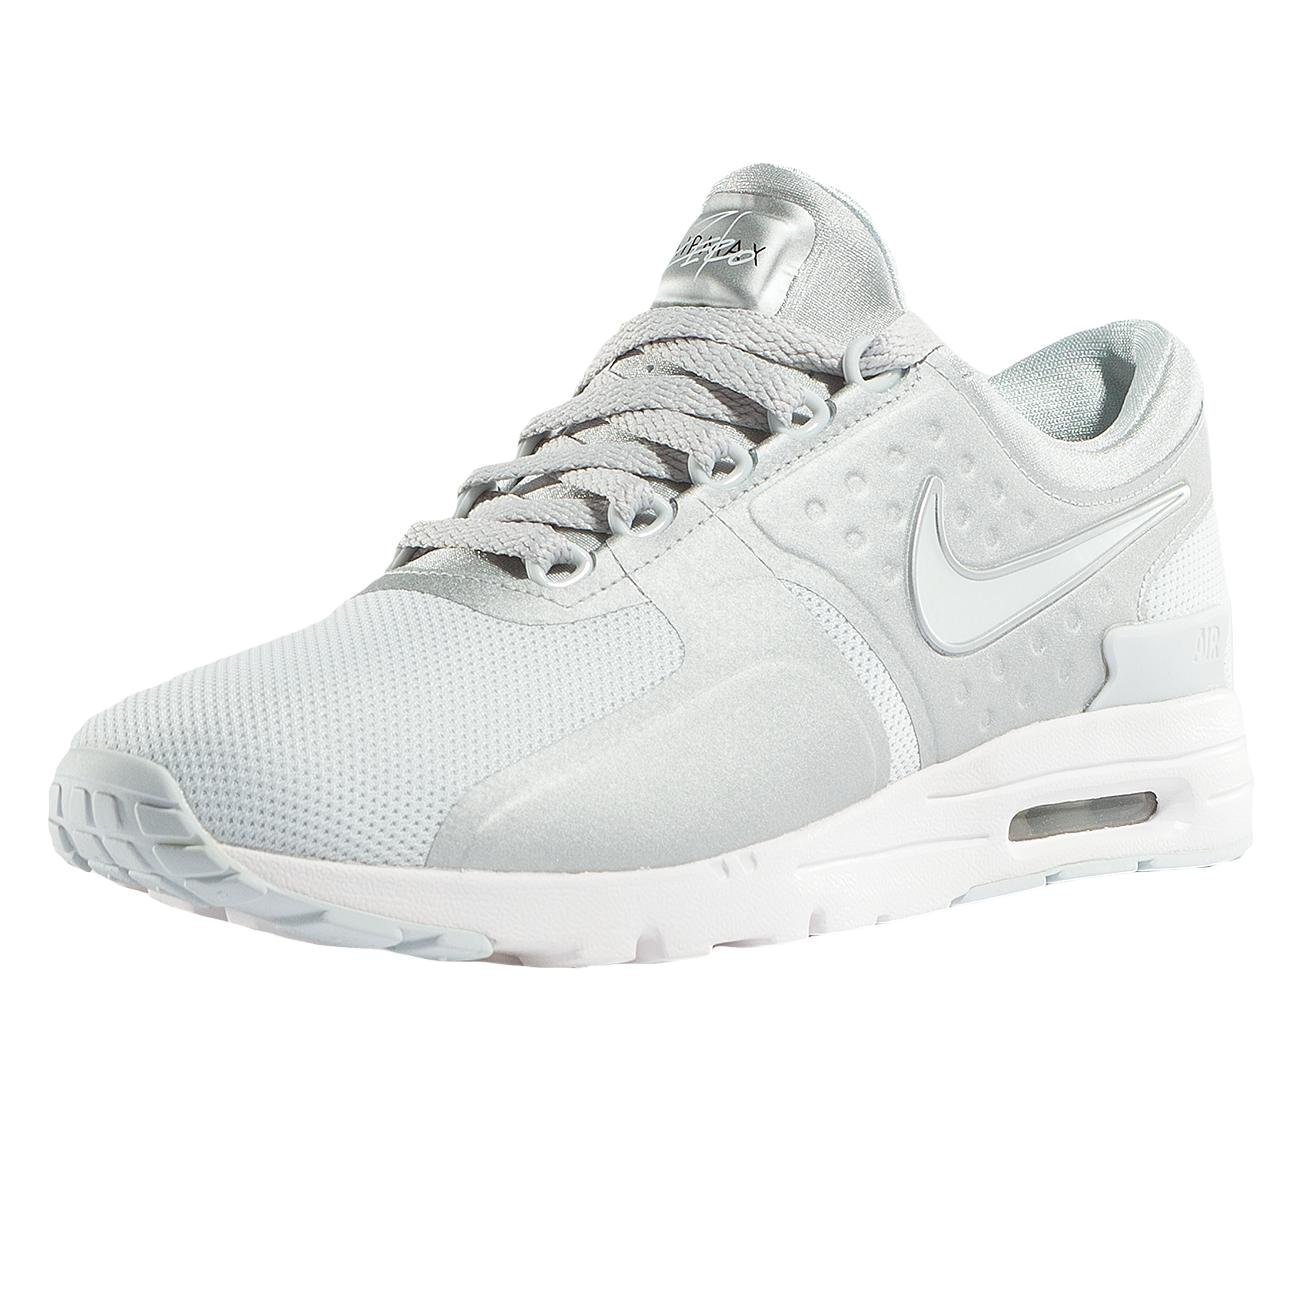 c77454bce3145 Galleon - NIKE Air Max Zero Women s Running Shoes